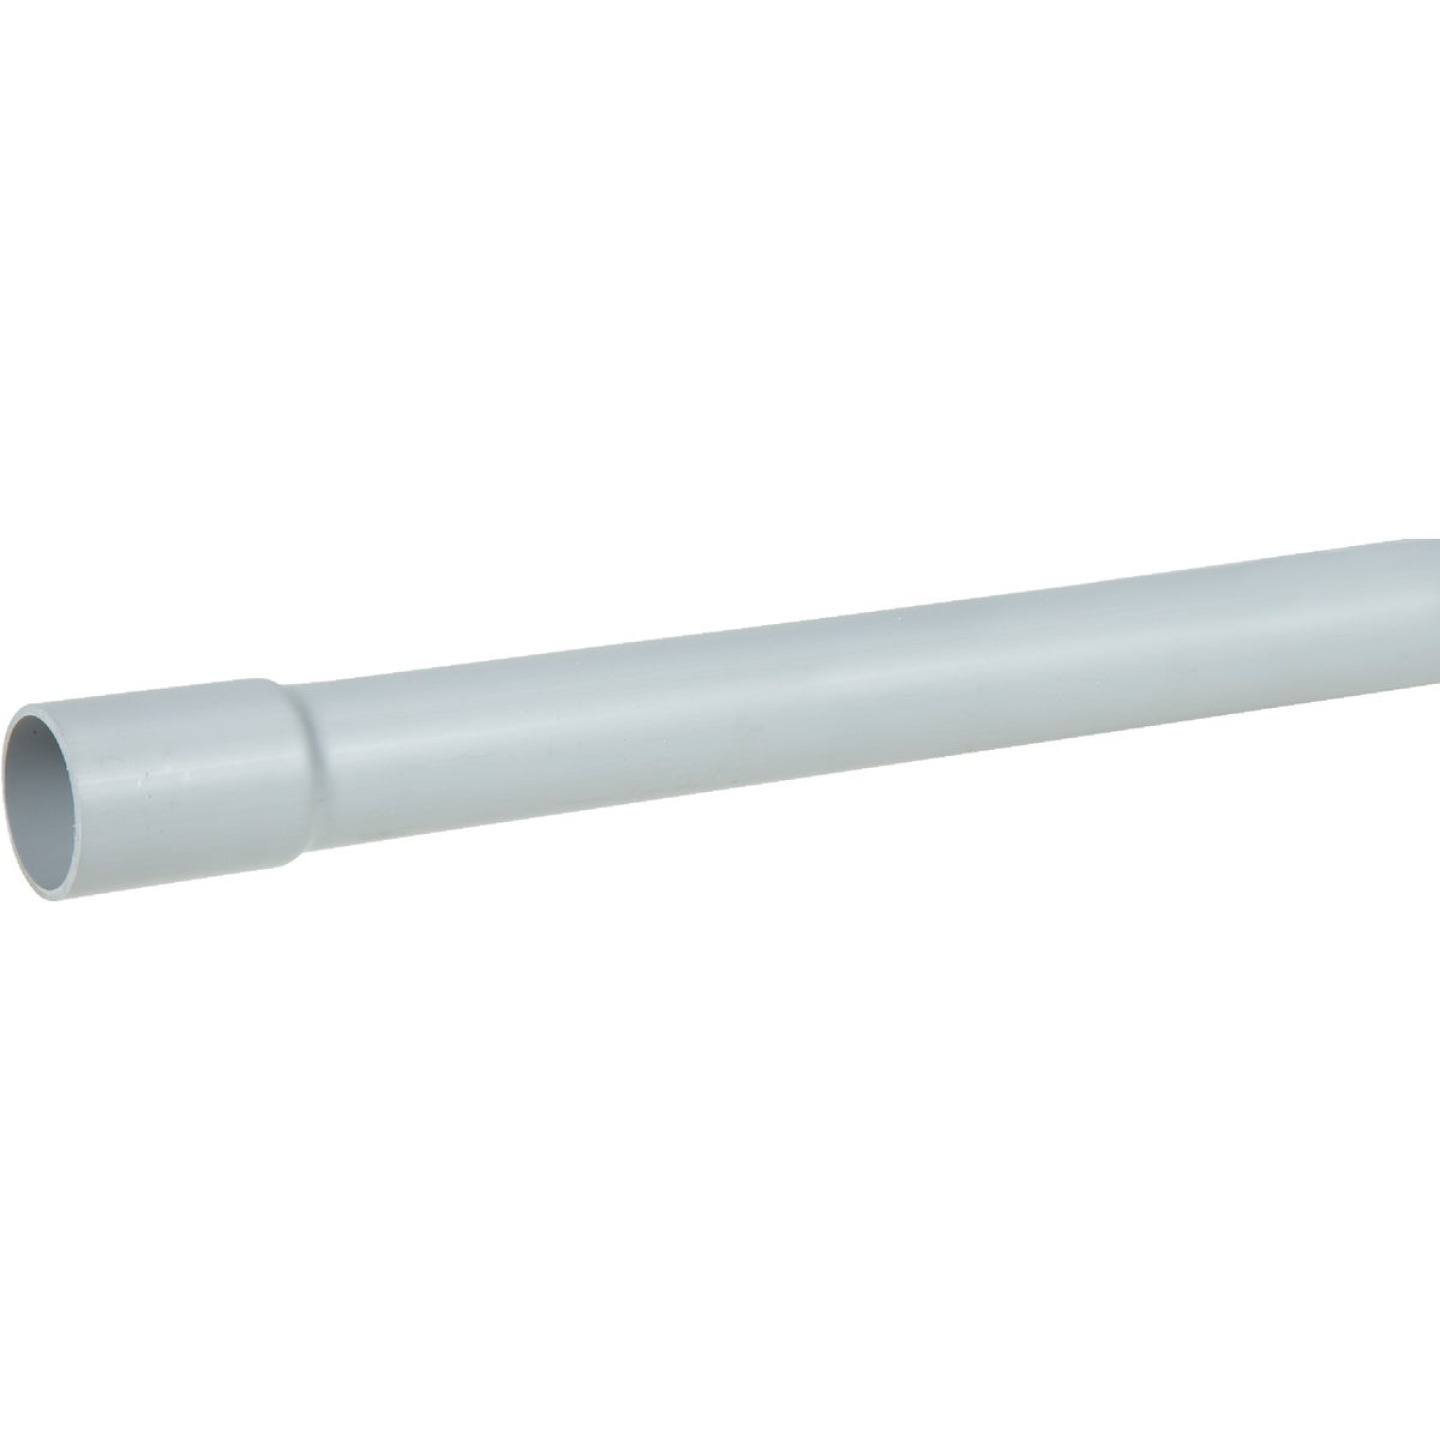 Allied 1 In. x 10 Ft. Schedule 40 PVC Conduit Image 1